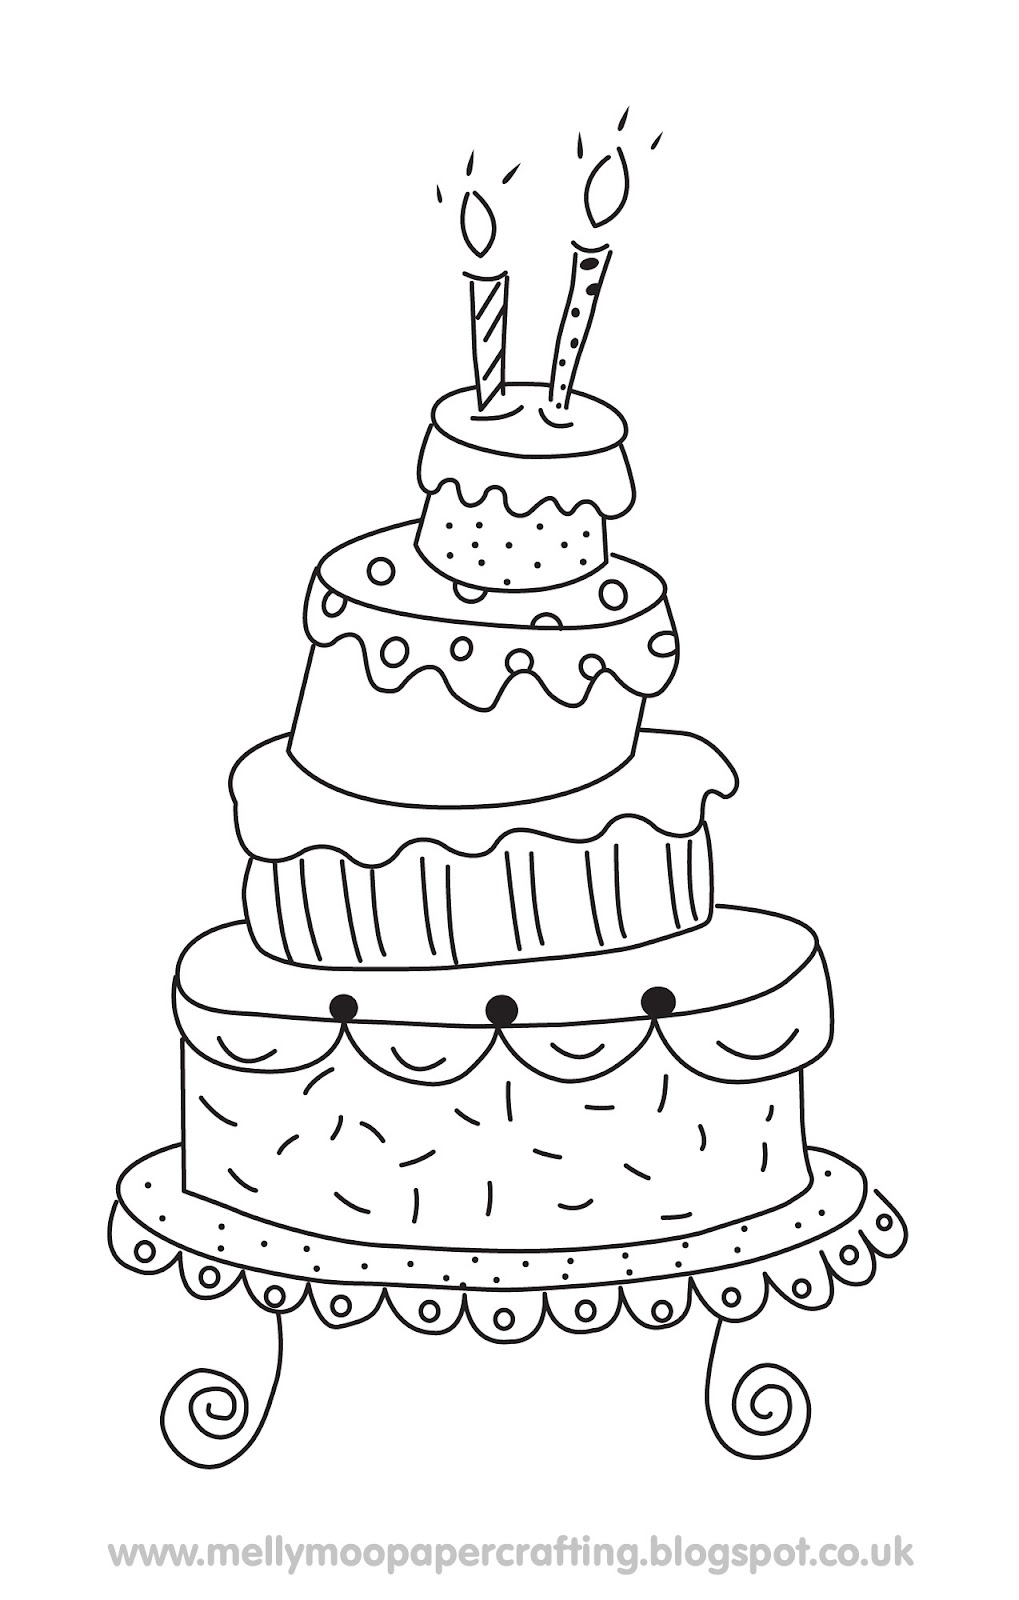 How To Use Woodware Cake Stamp